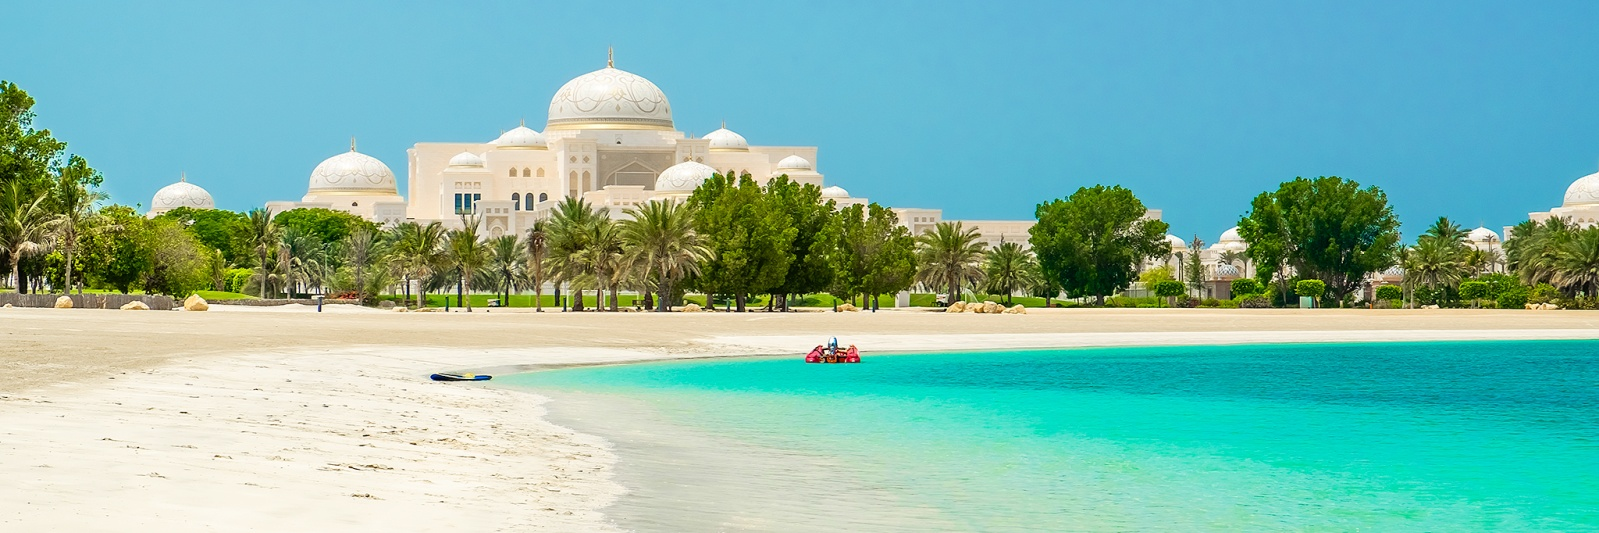 United Arab Emirates - Abu Dhabi